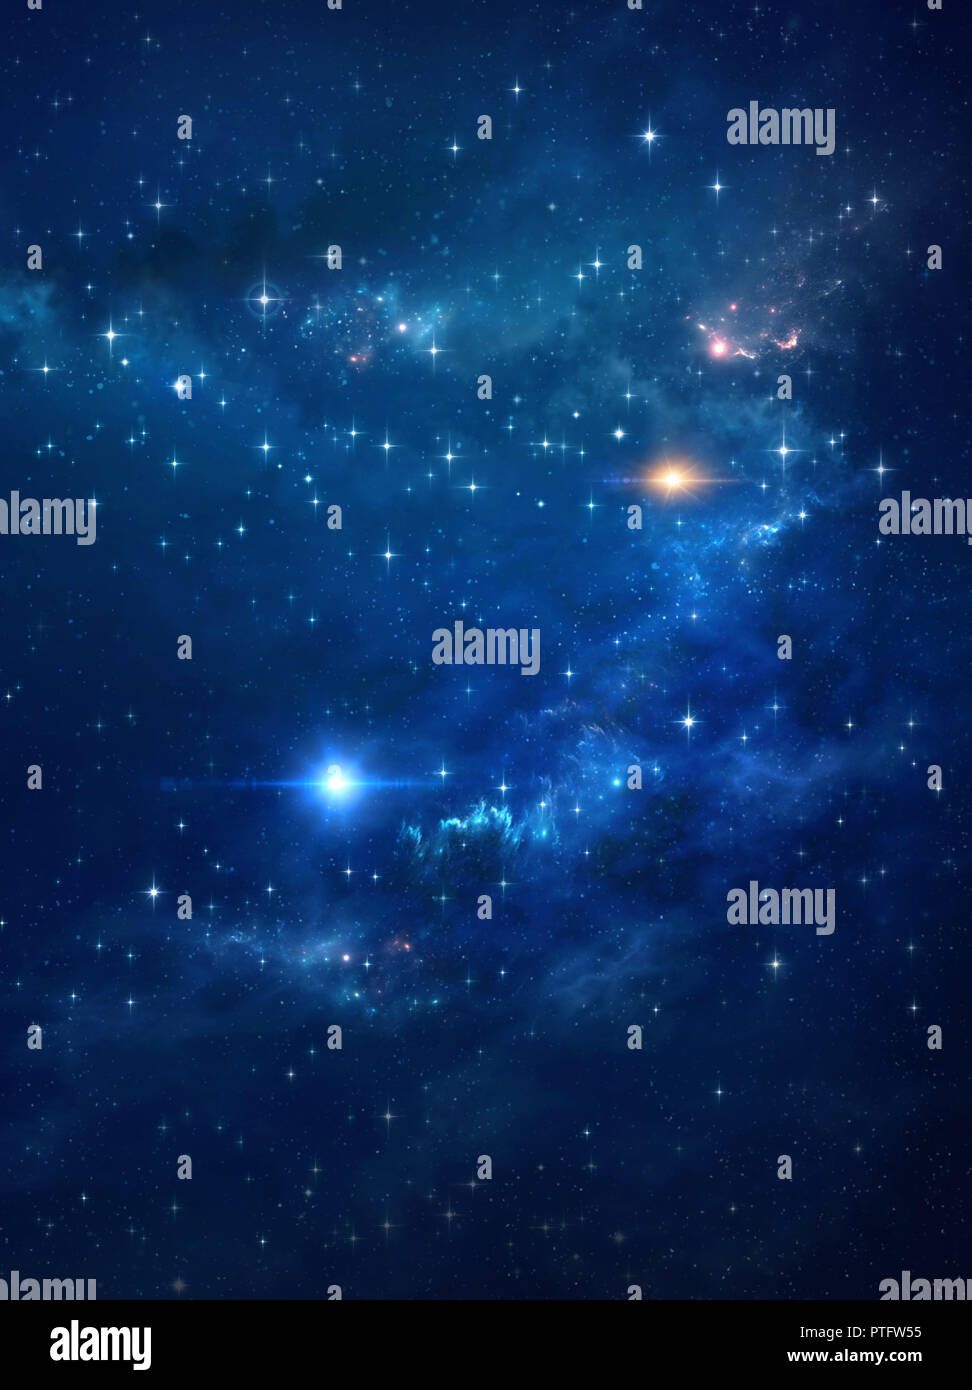 Galaxy and star lights in deep space. High definition universe background. - Stock Image